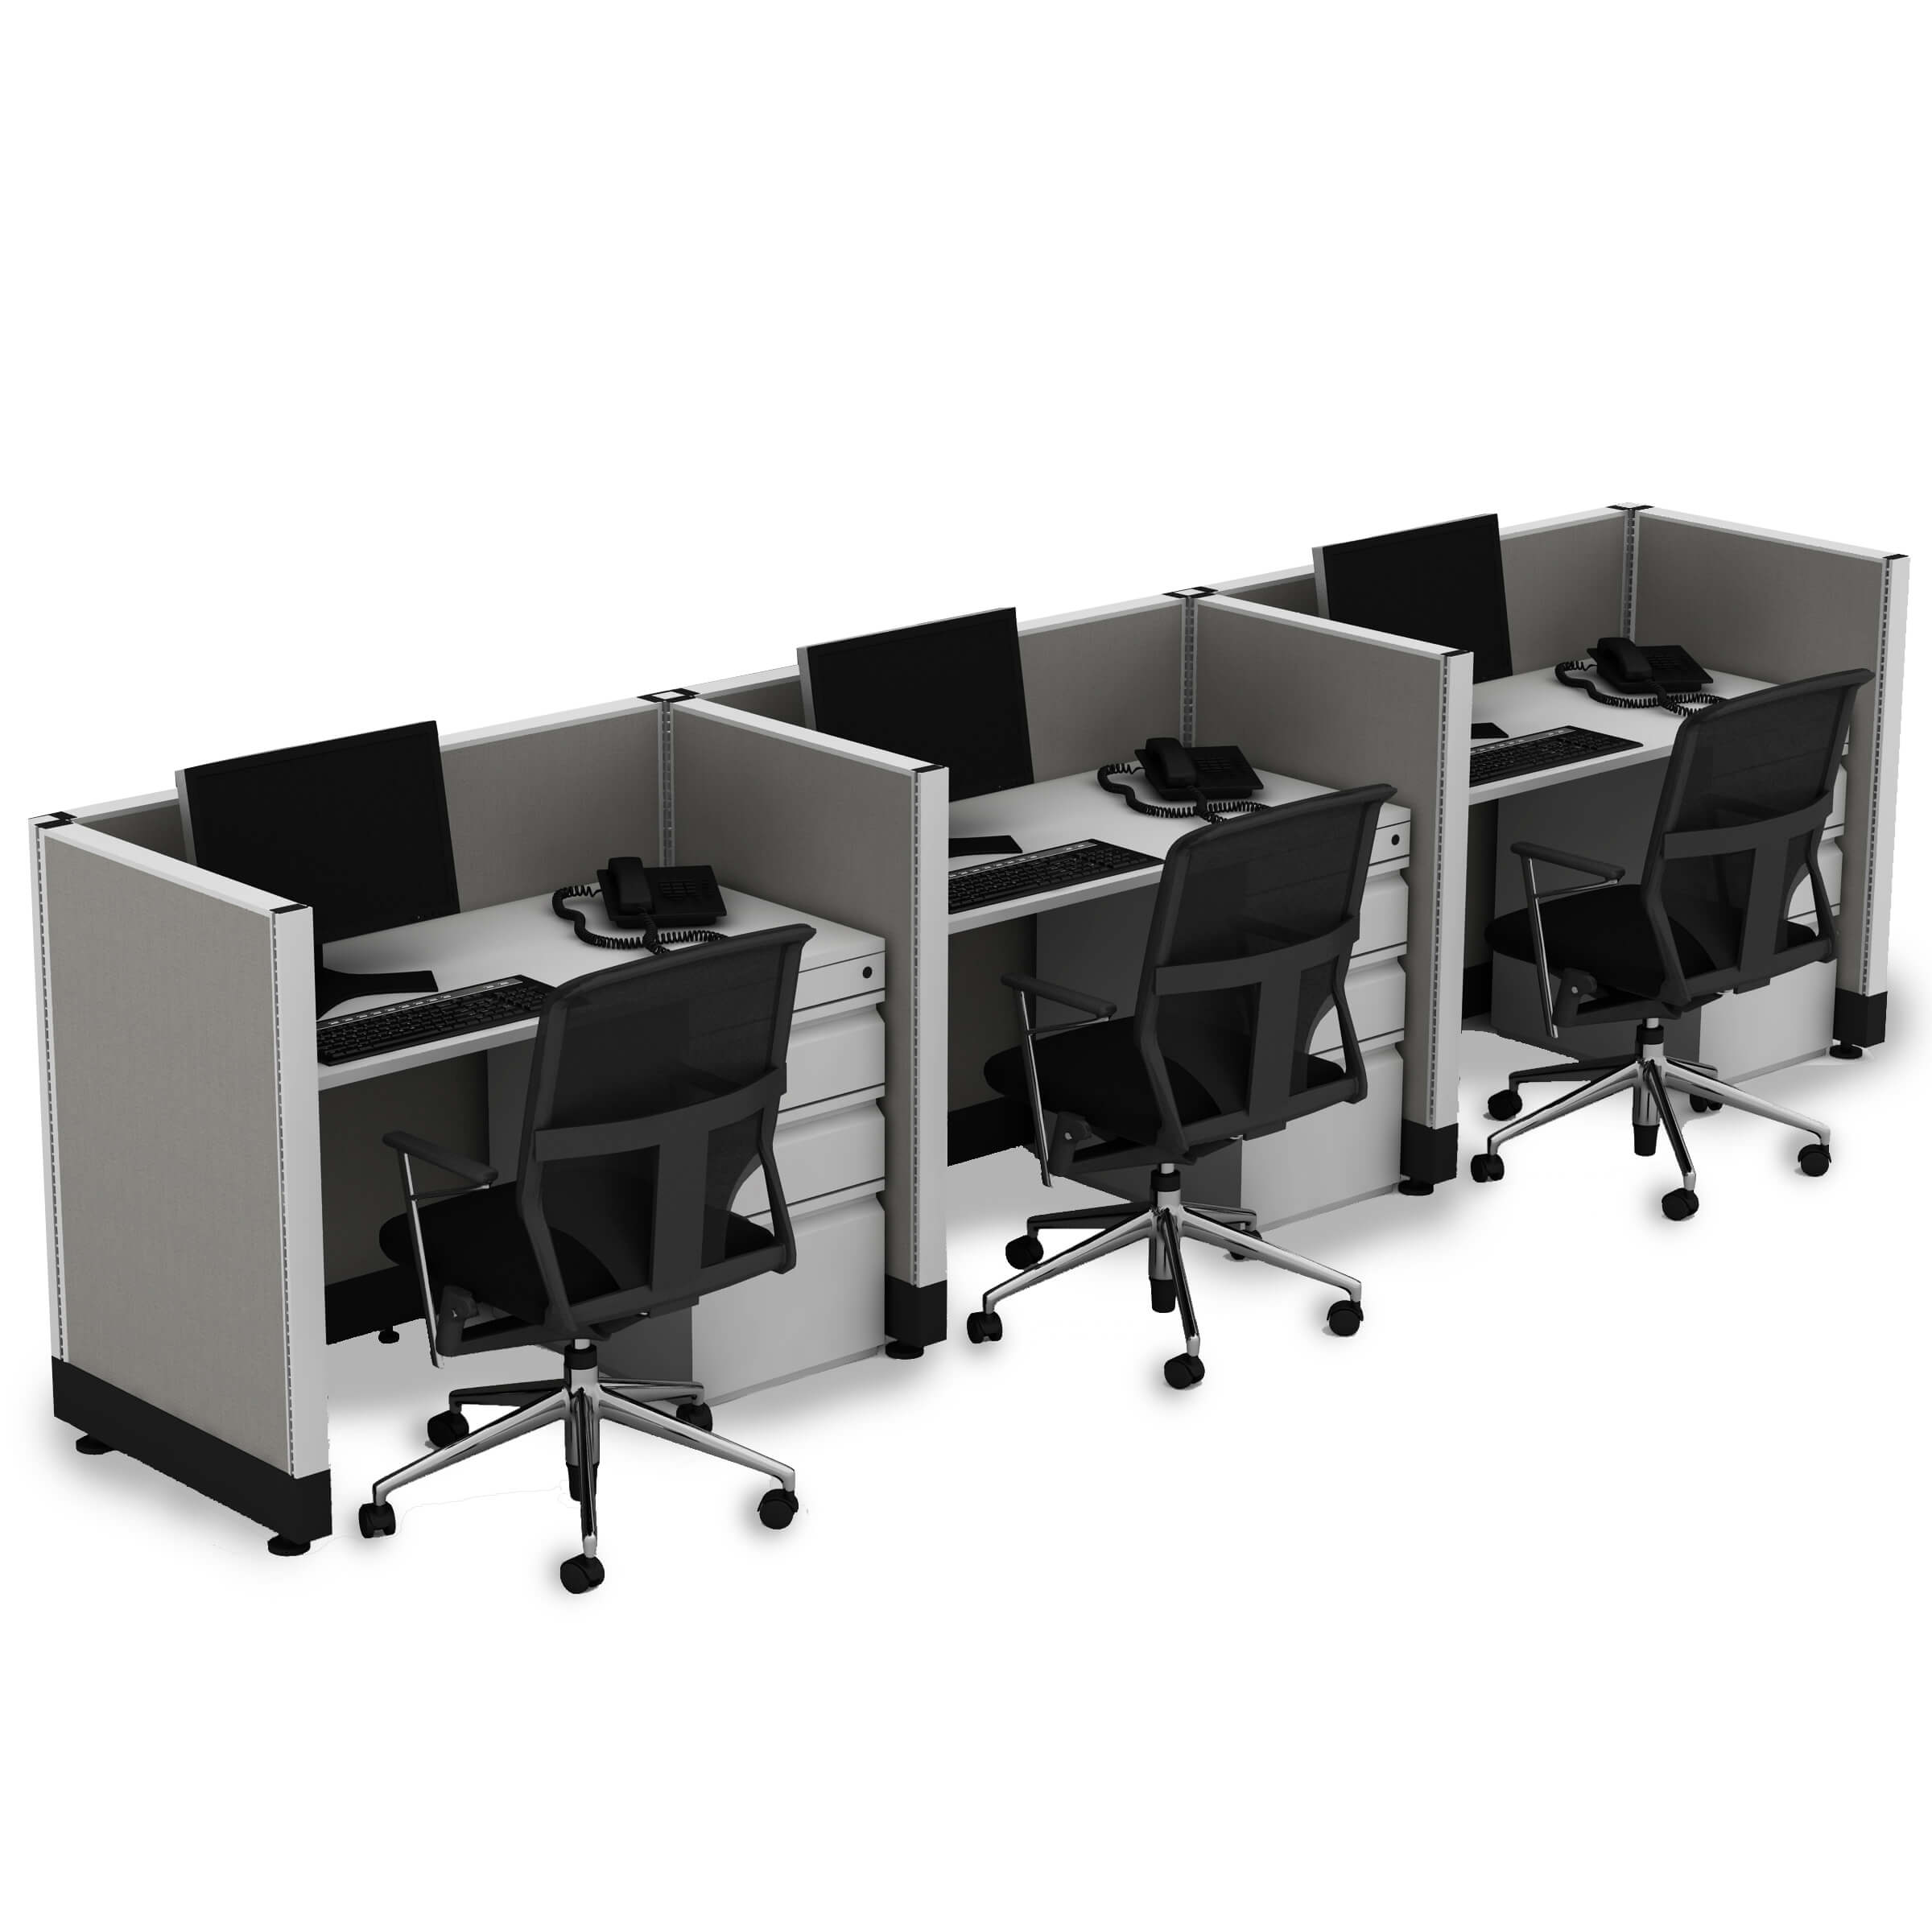 hot-desking-small-office-cubicles-3-pack.jpg